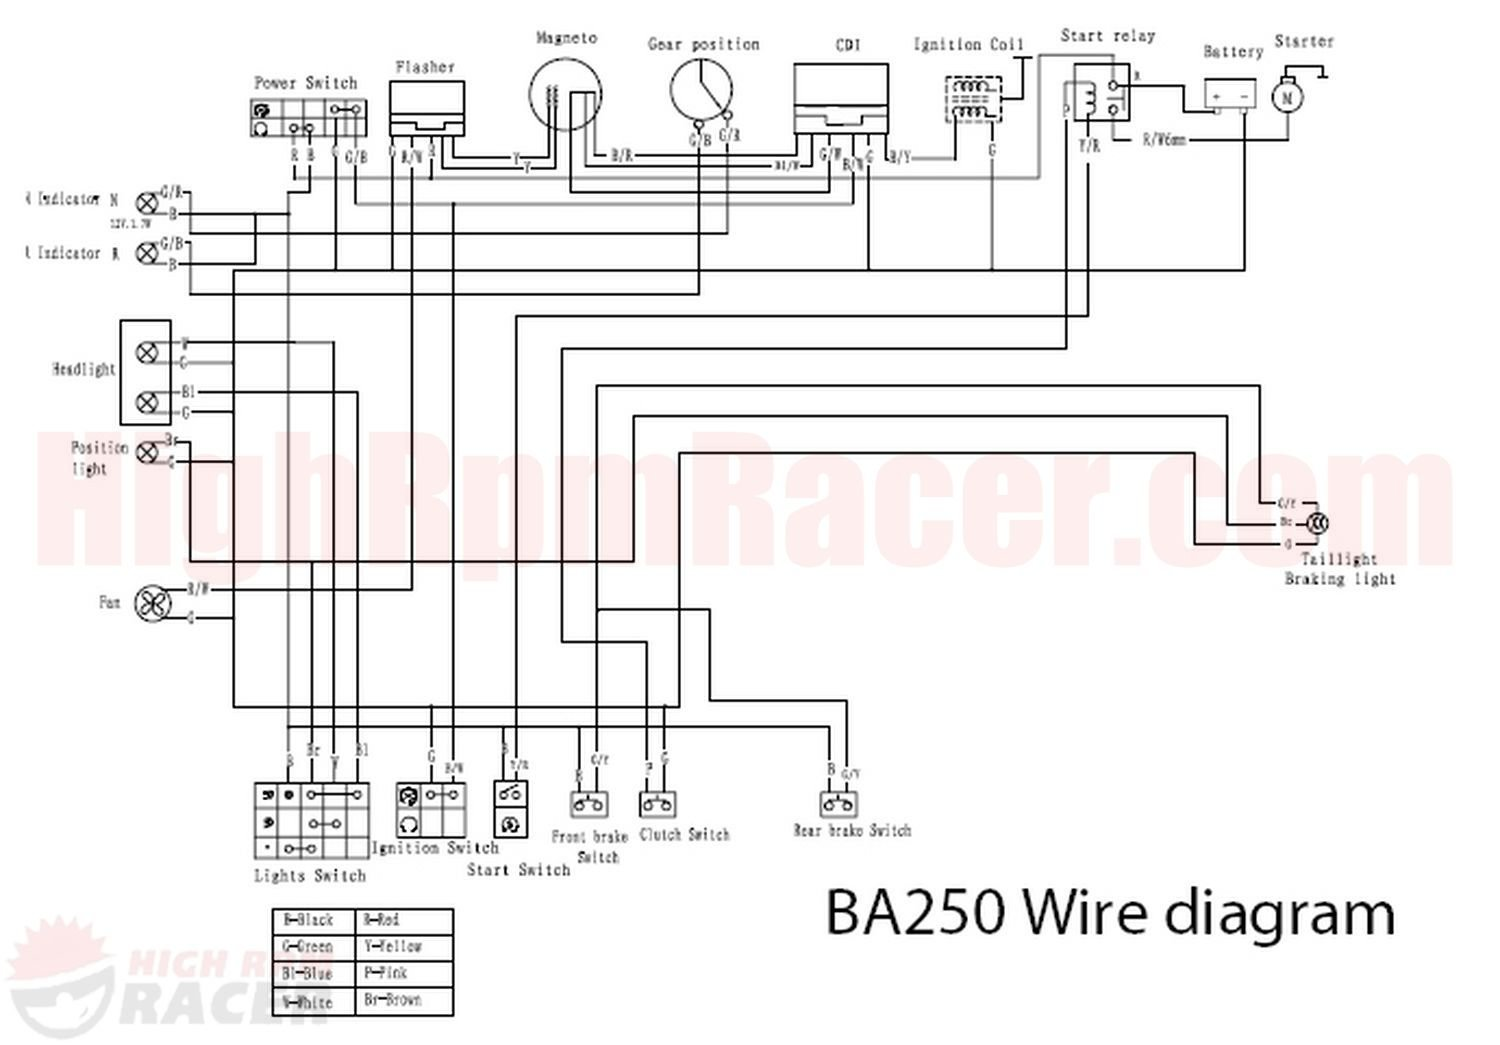 2015 Taotao Scooter Wiring Diagram additionally Wiring Diagram For Baja 110cc Atvs P 10431 also 250cc Chinese Scooter Wiring Diagram as well Loncin 4 Wheeler Wiring Diagram in addition Wildfire 150cc Scooter Wiring Diagram. on tao 250cc atv wiring diagram